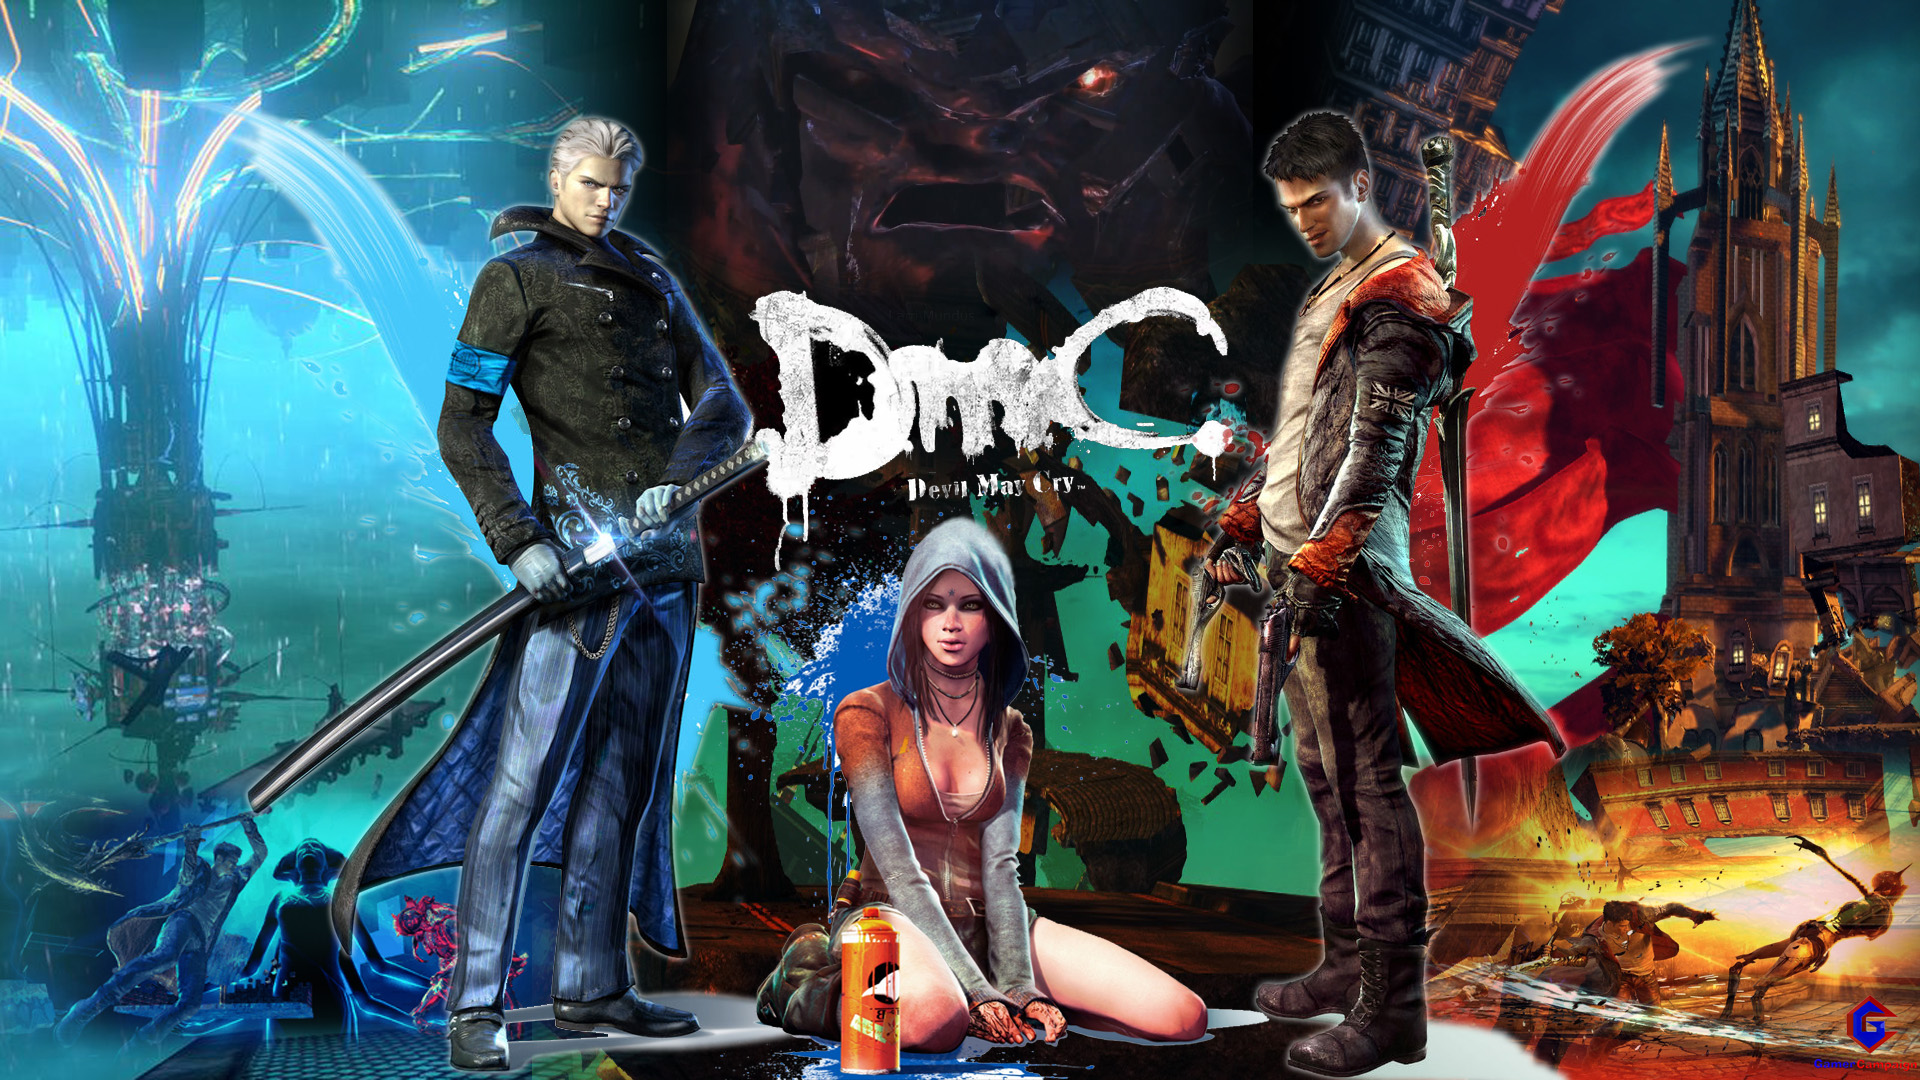 Devil May Cry Exclusive Wallpaper